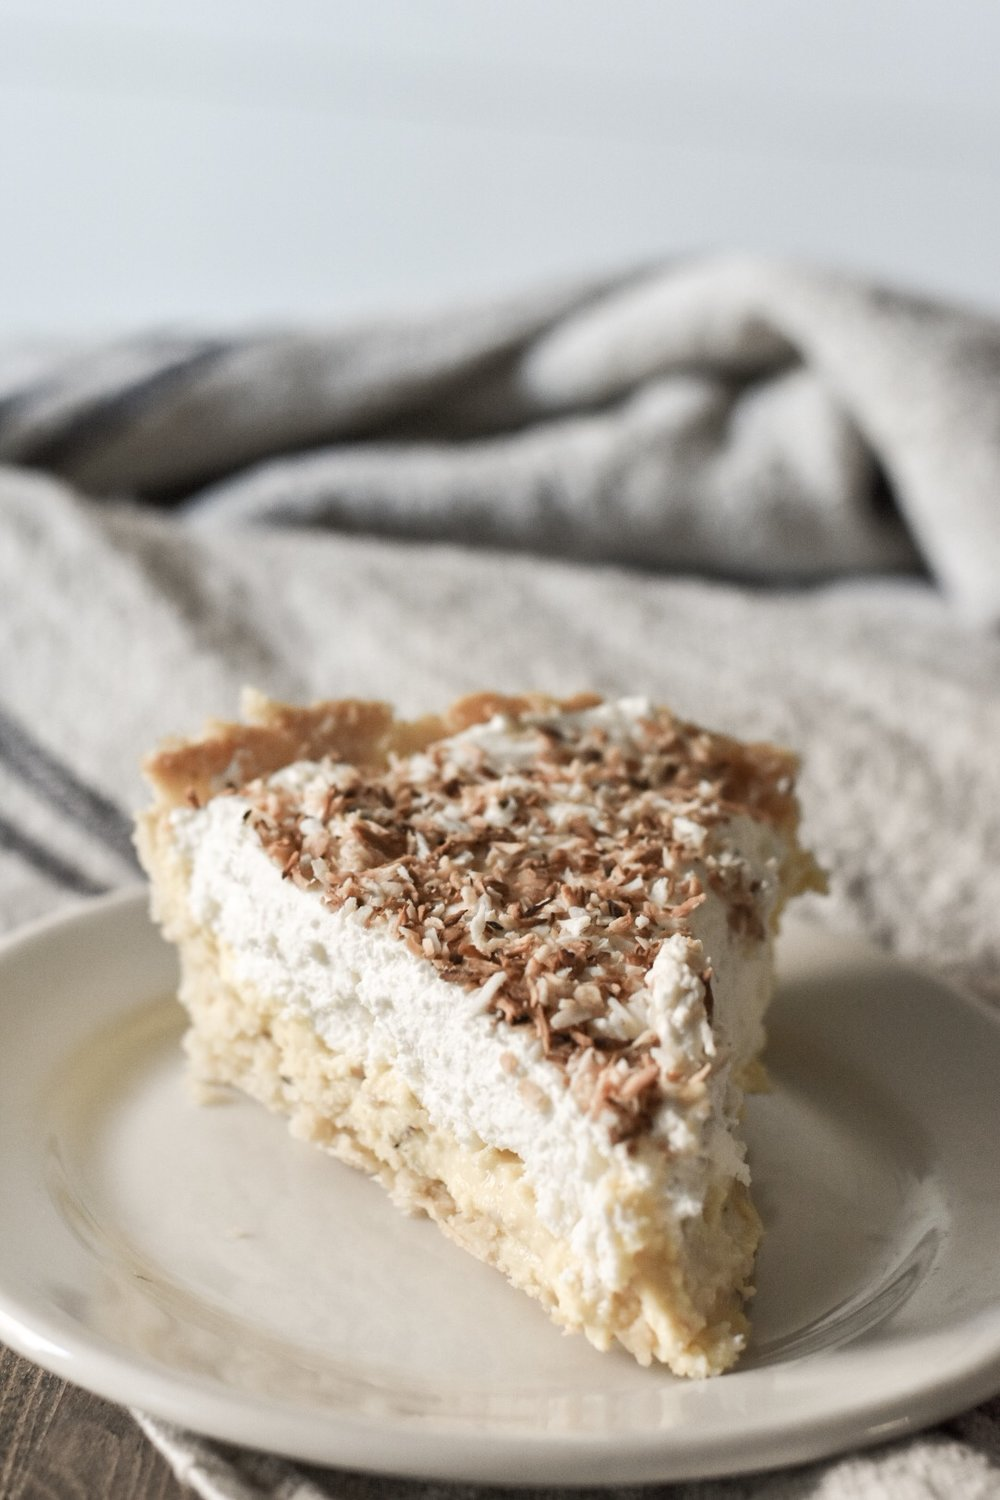 Slice of Homemade Coconut Cream Pie  Low-Carb  Keto  Trim Healthy Mama  Gluten Free  Sugar Free  Rocky Hedge Farm.JPG